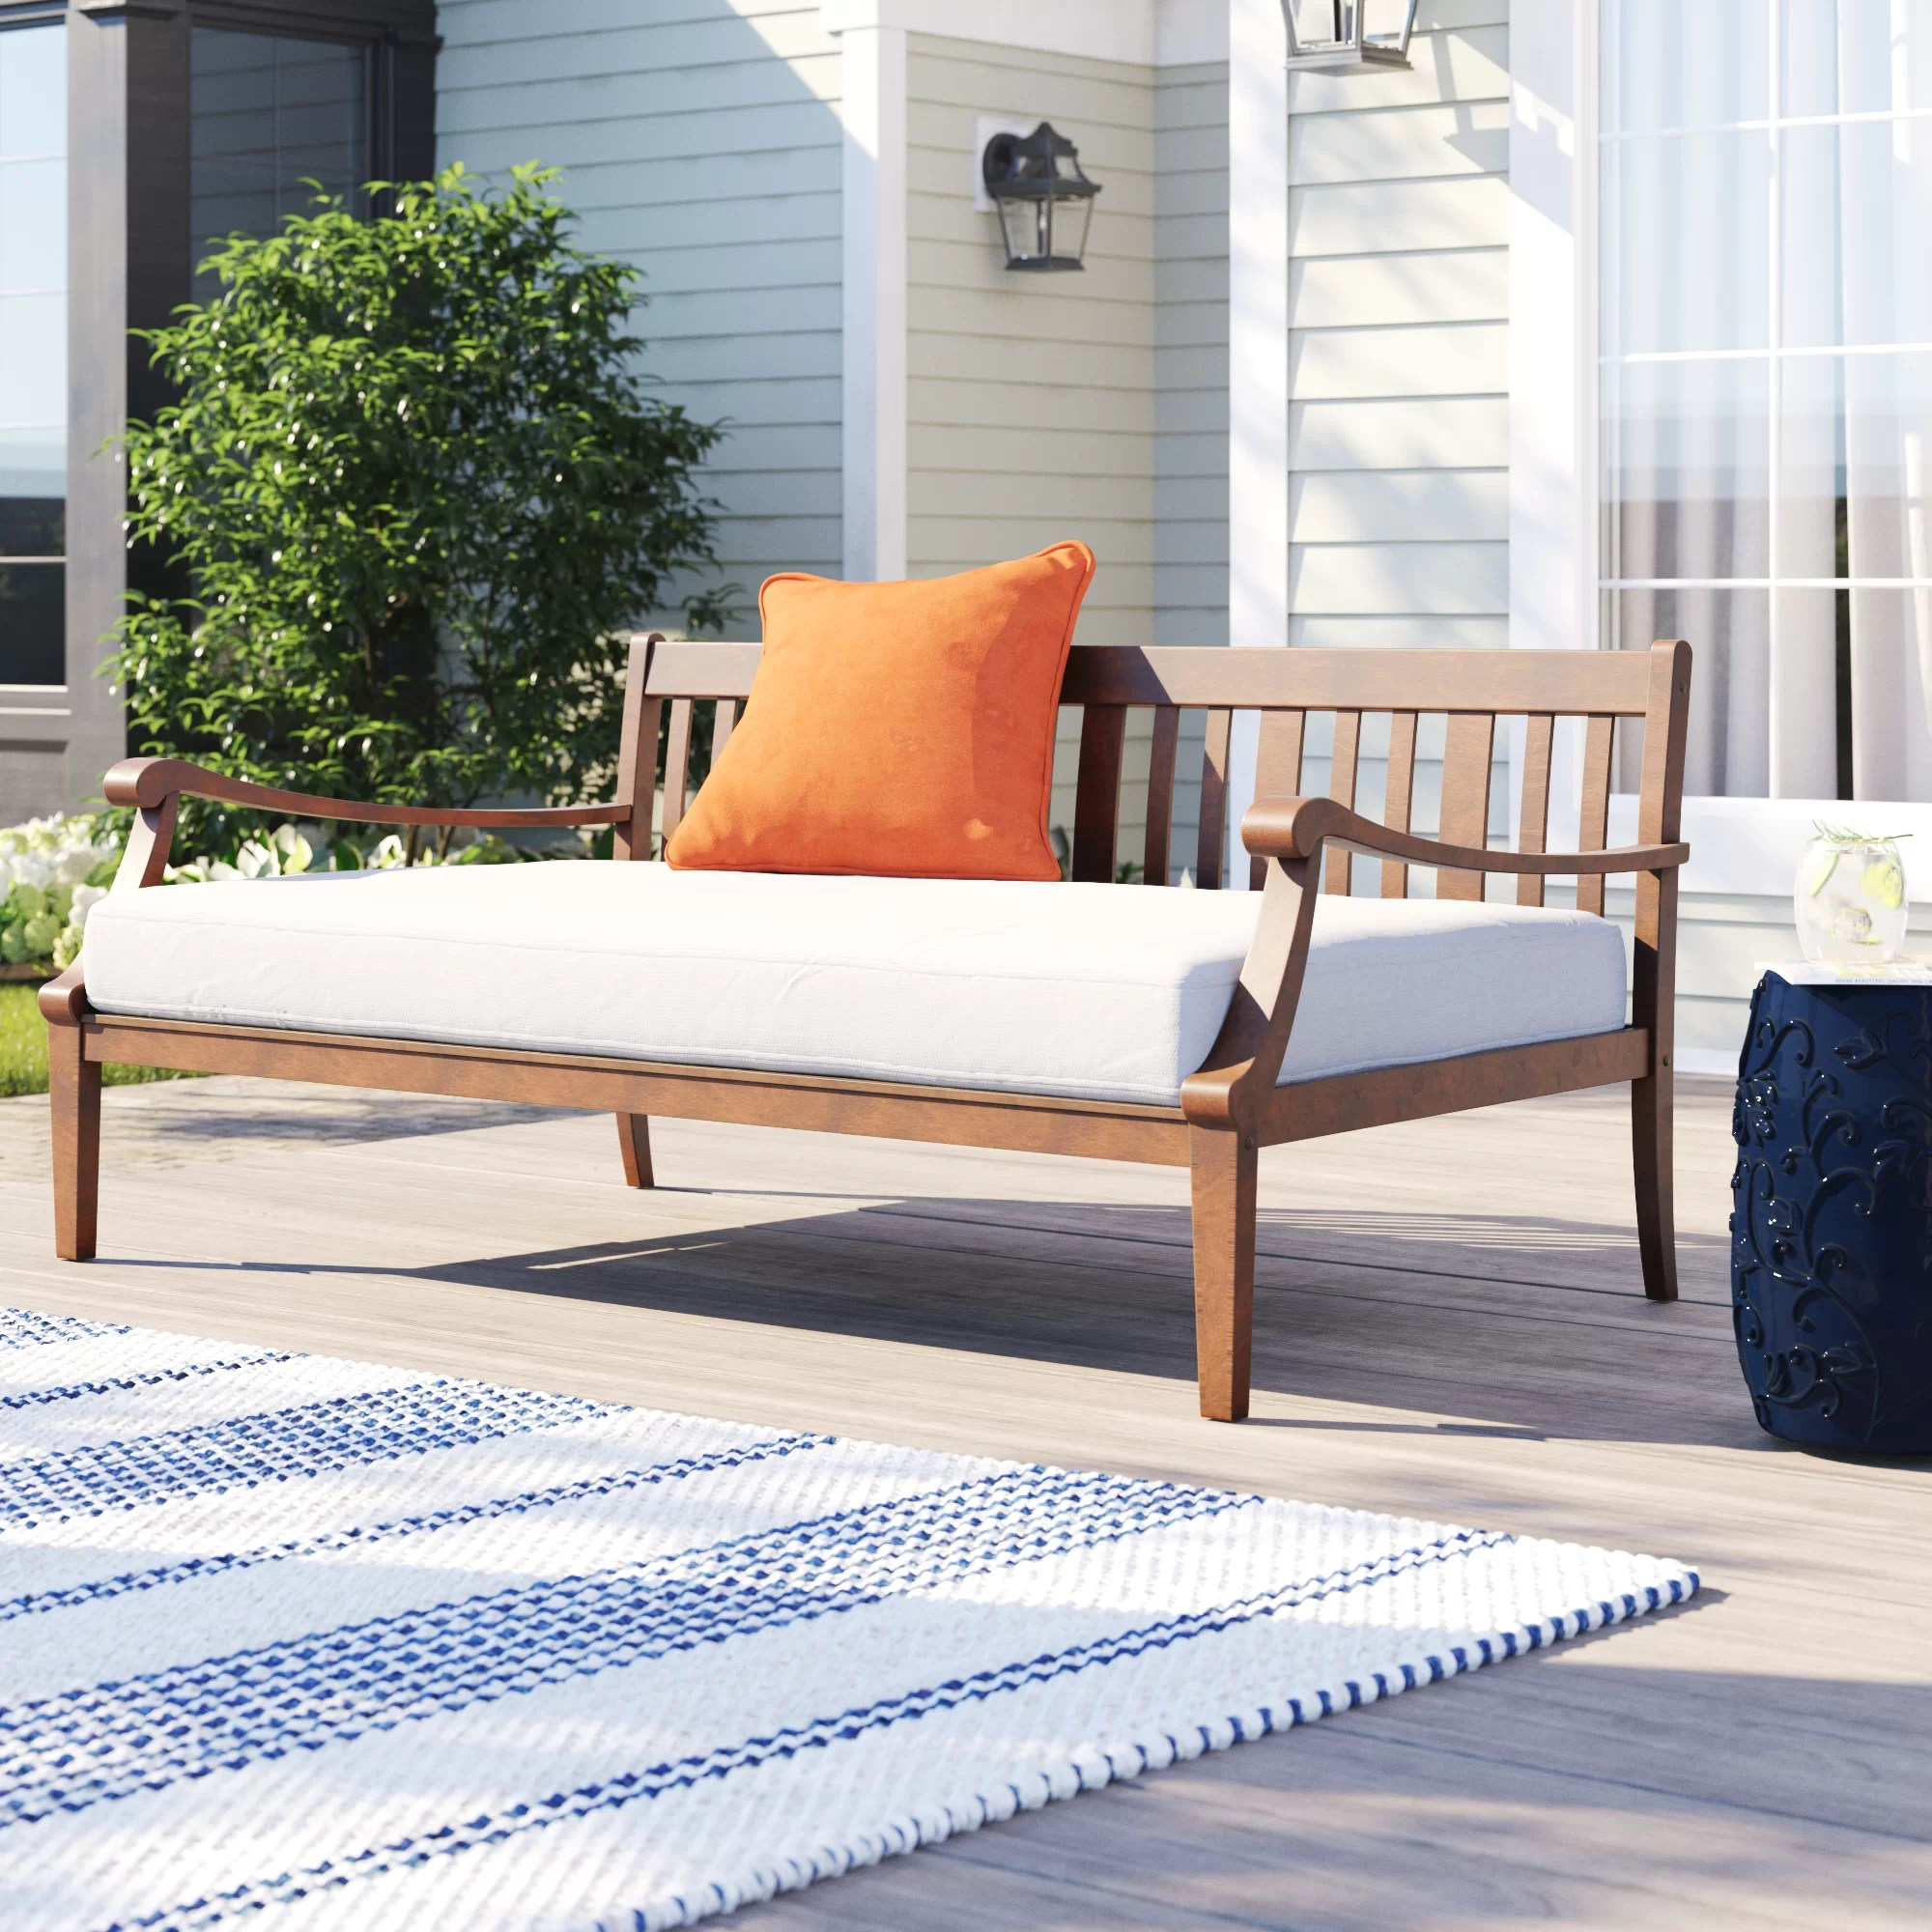 dowling 69 5 wide outdoor patio daybed with cushions